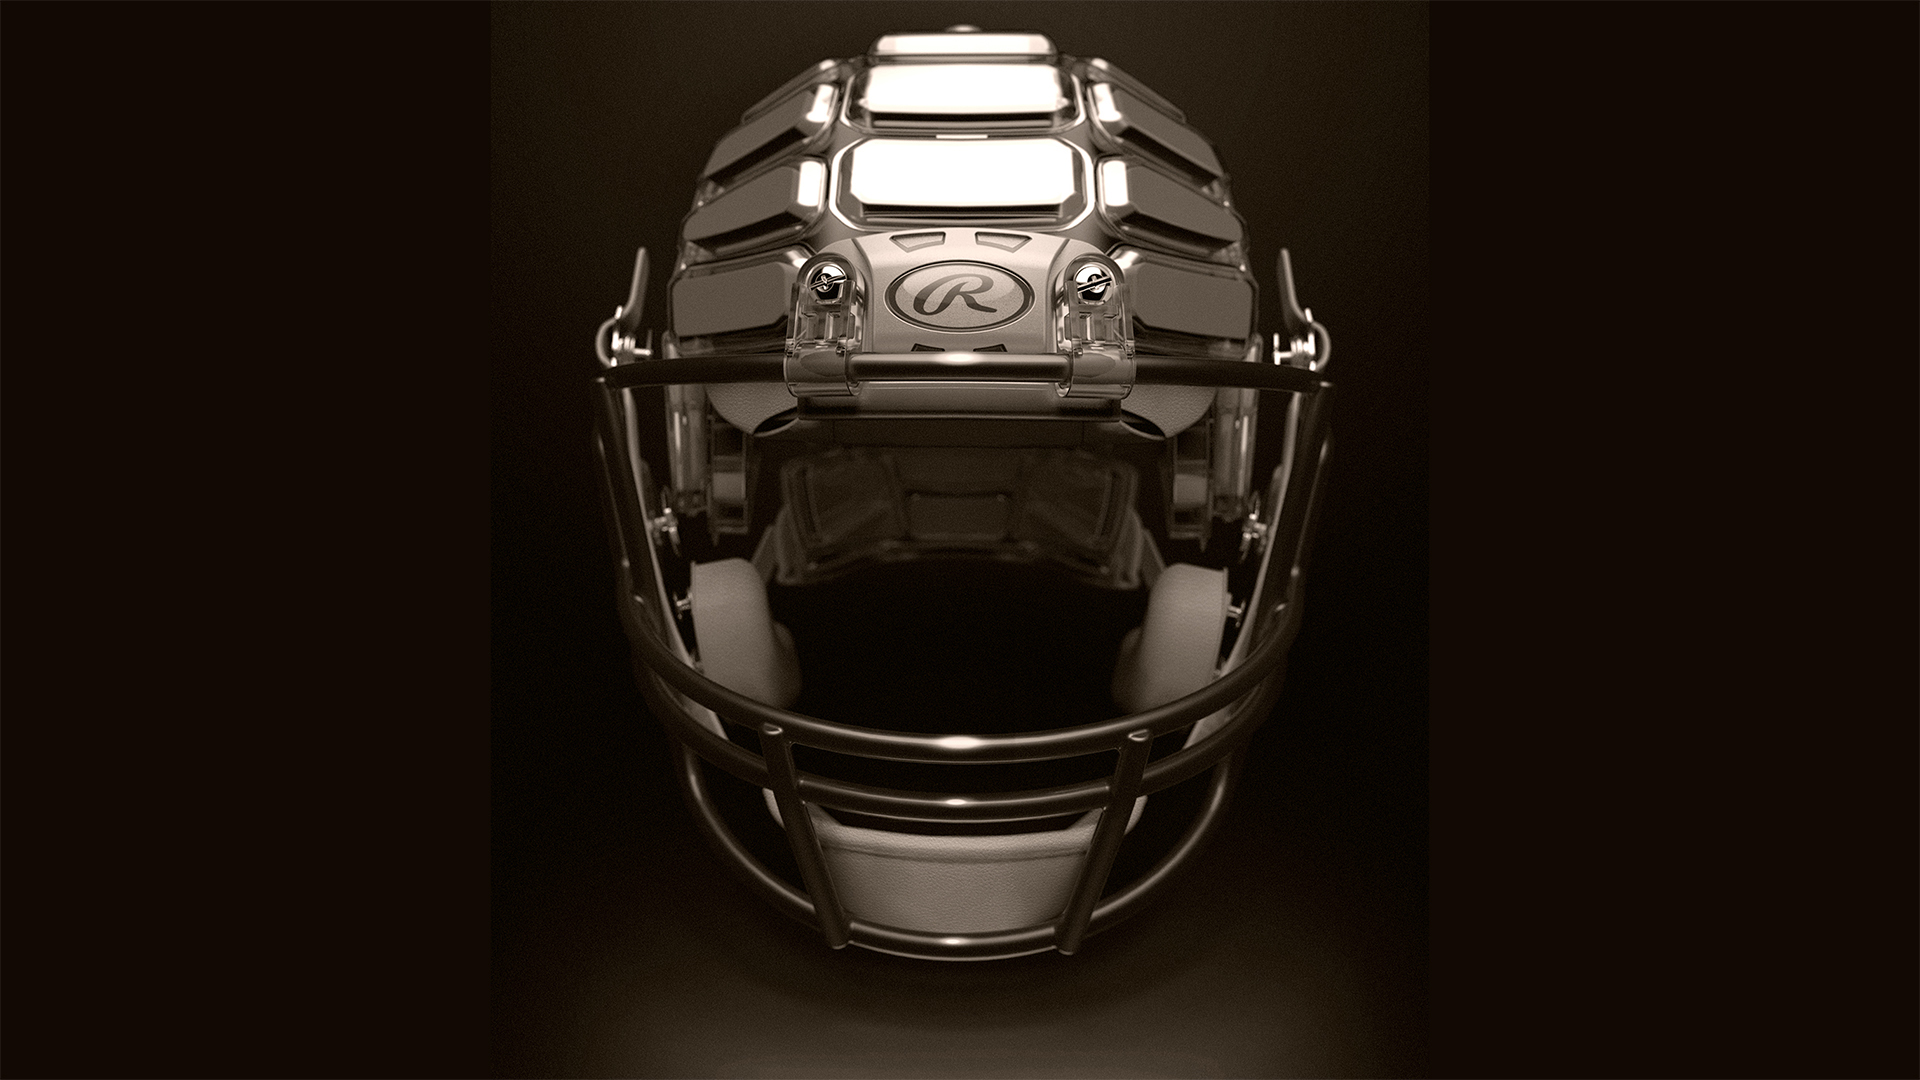 priority_designs_RAWLINGS_NRG_FOOTBALL_HELMET_design_and_develoment_consulting_002